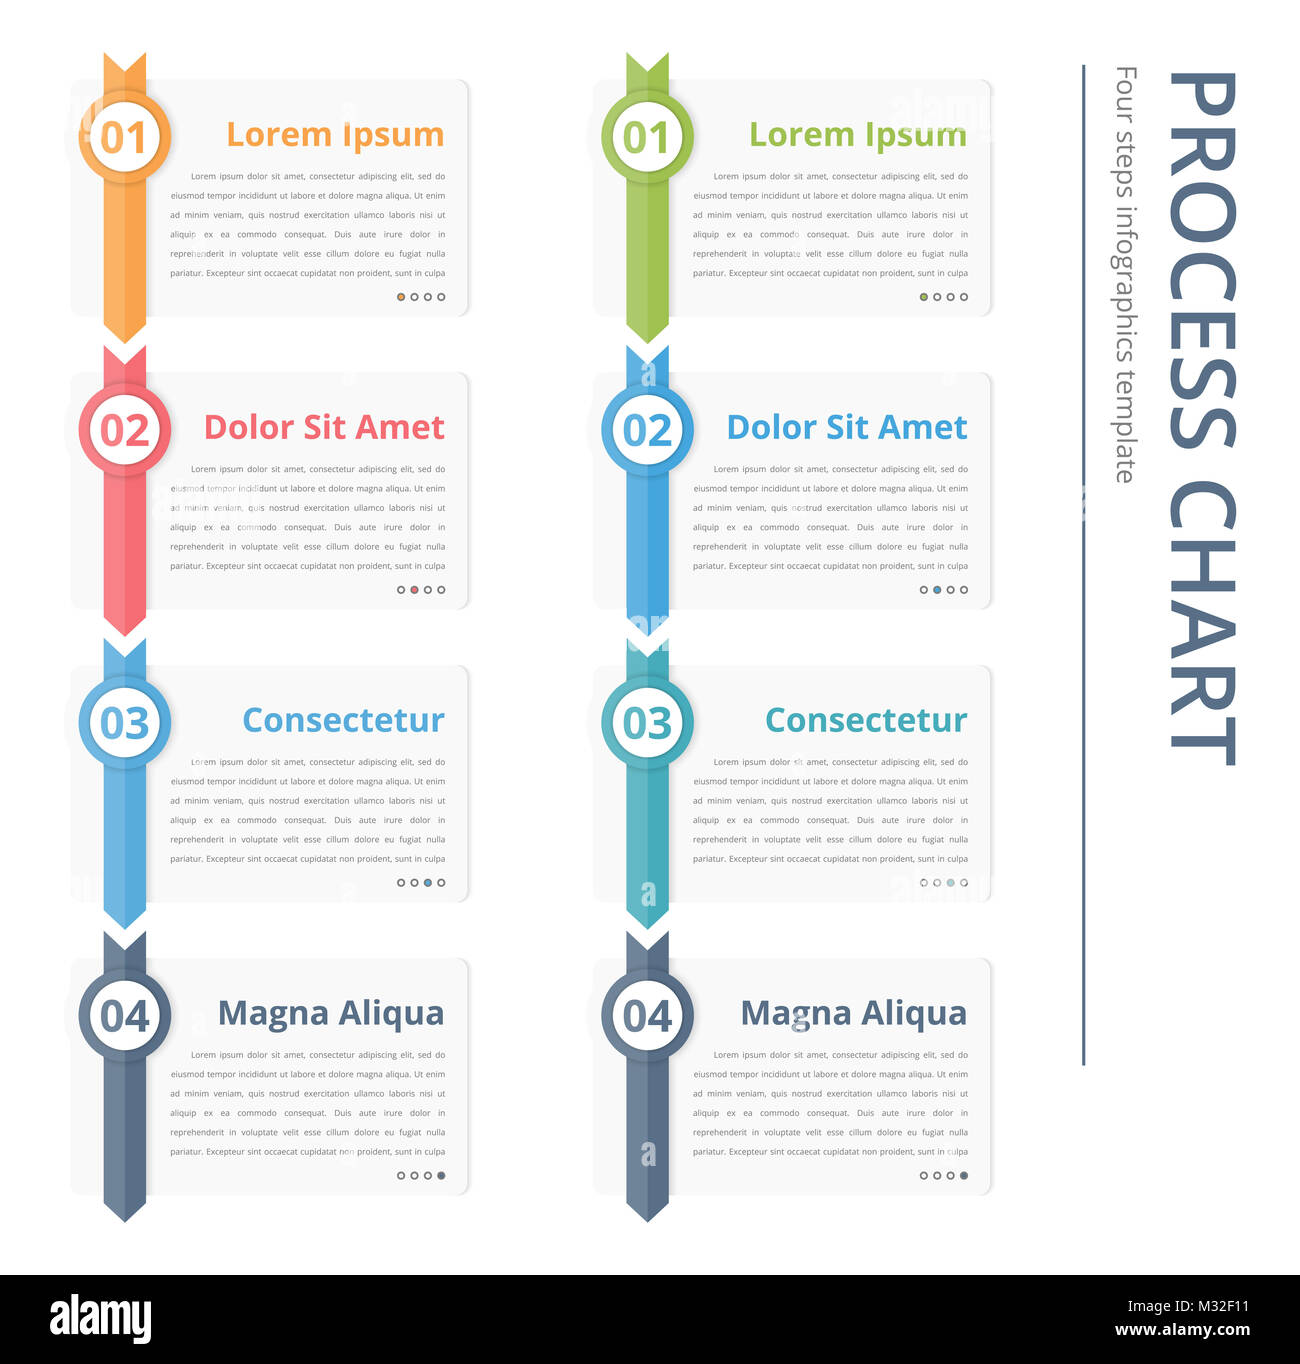 Process Flow Chart Template from c8.alamy.com